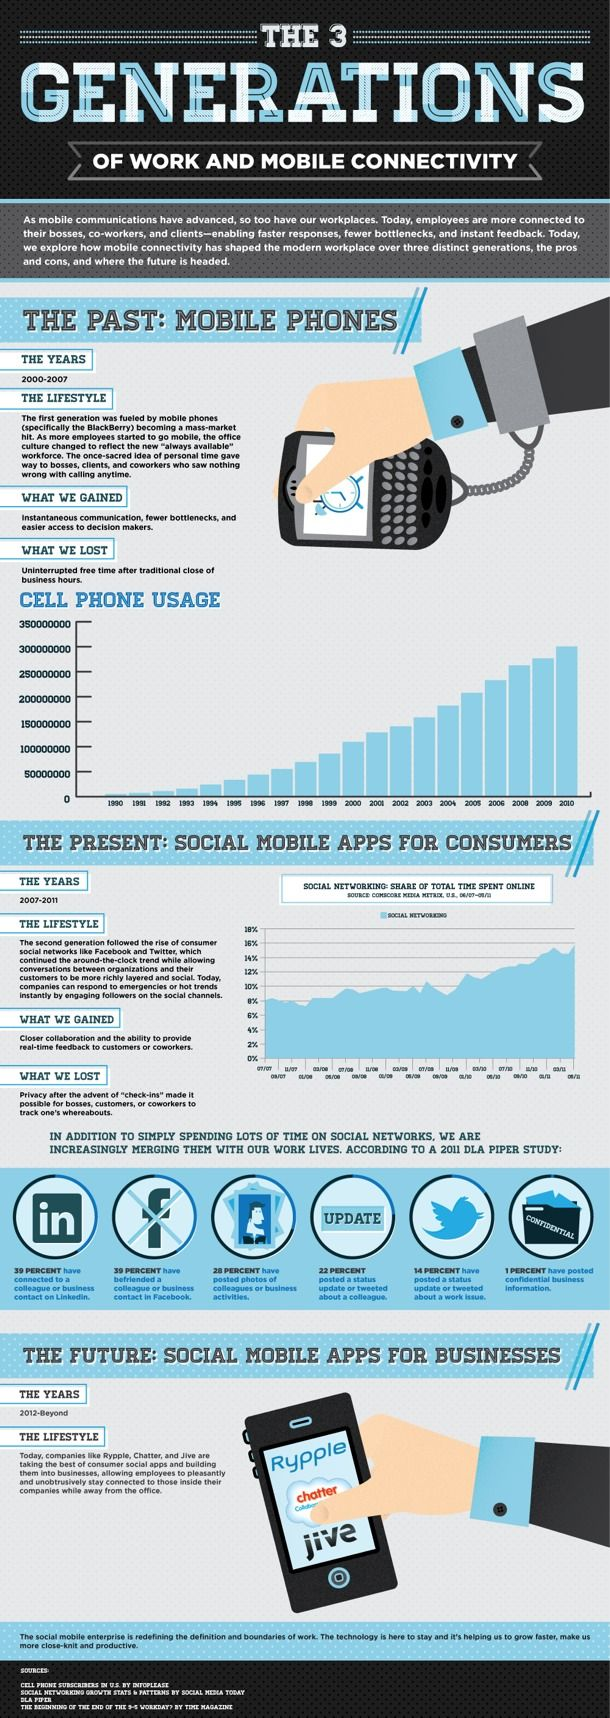 The infographic - from Salesforce Rypple - predicts a third generation to follow today's consumer-centric mobile workplace, and is a good way to start a dialogue about how social mobility will progress in the enterprise. http://www.readwriteweb.com/mobile/2012/04/the-future-of-social-mobile-co.php